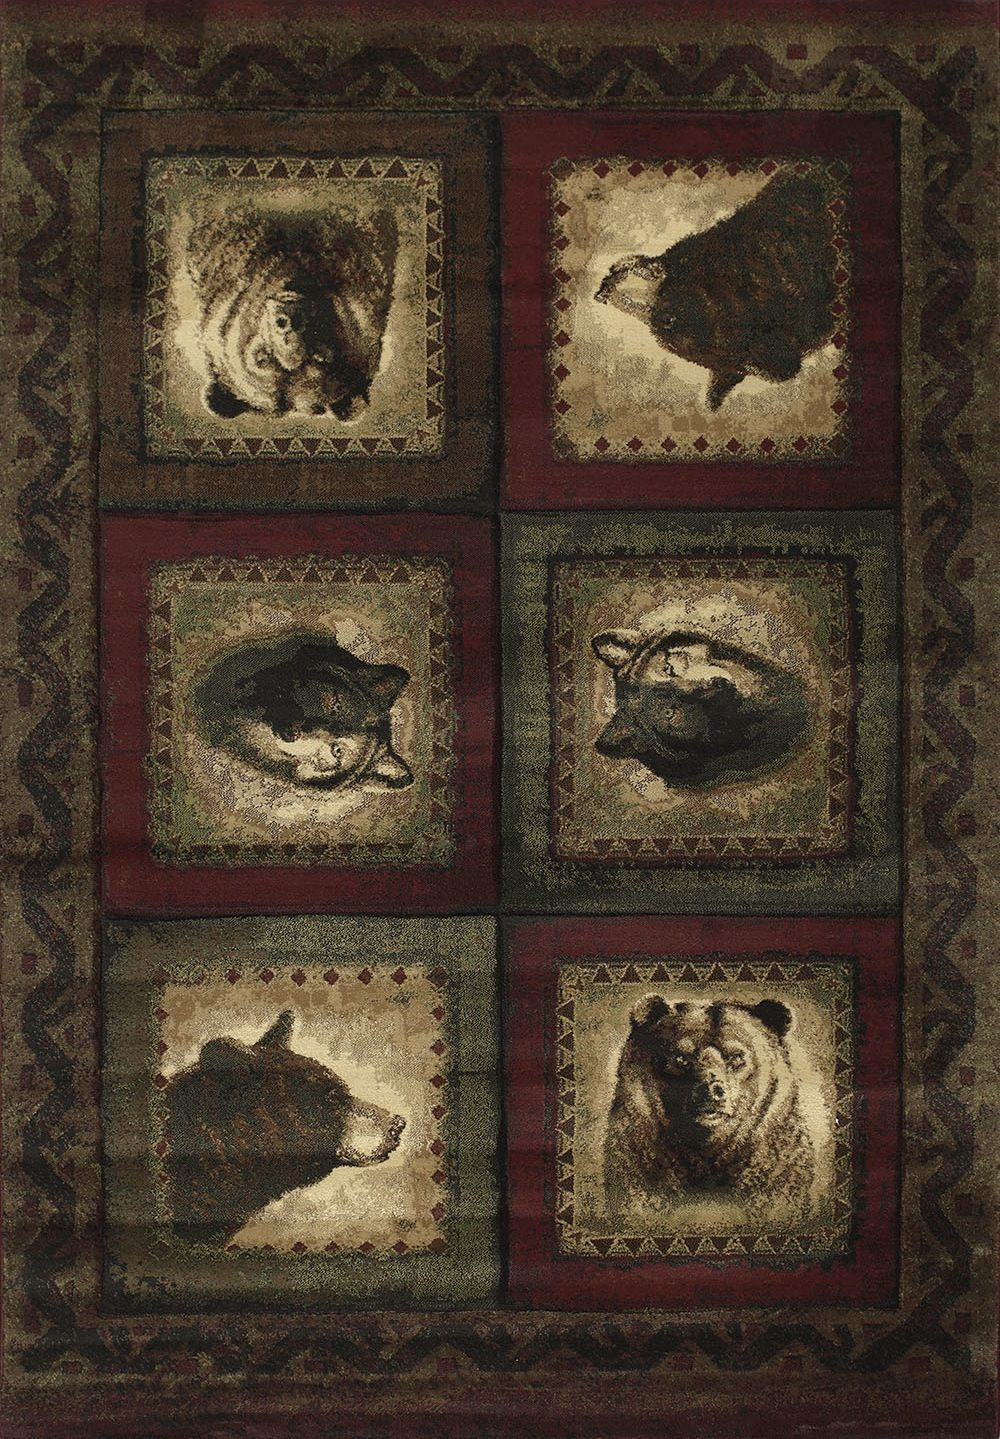 united weavers contours-jq bears &wolf southwestern/lodge area rug collection